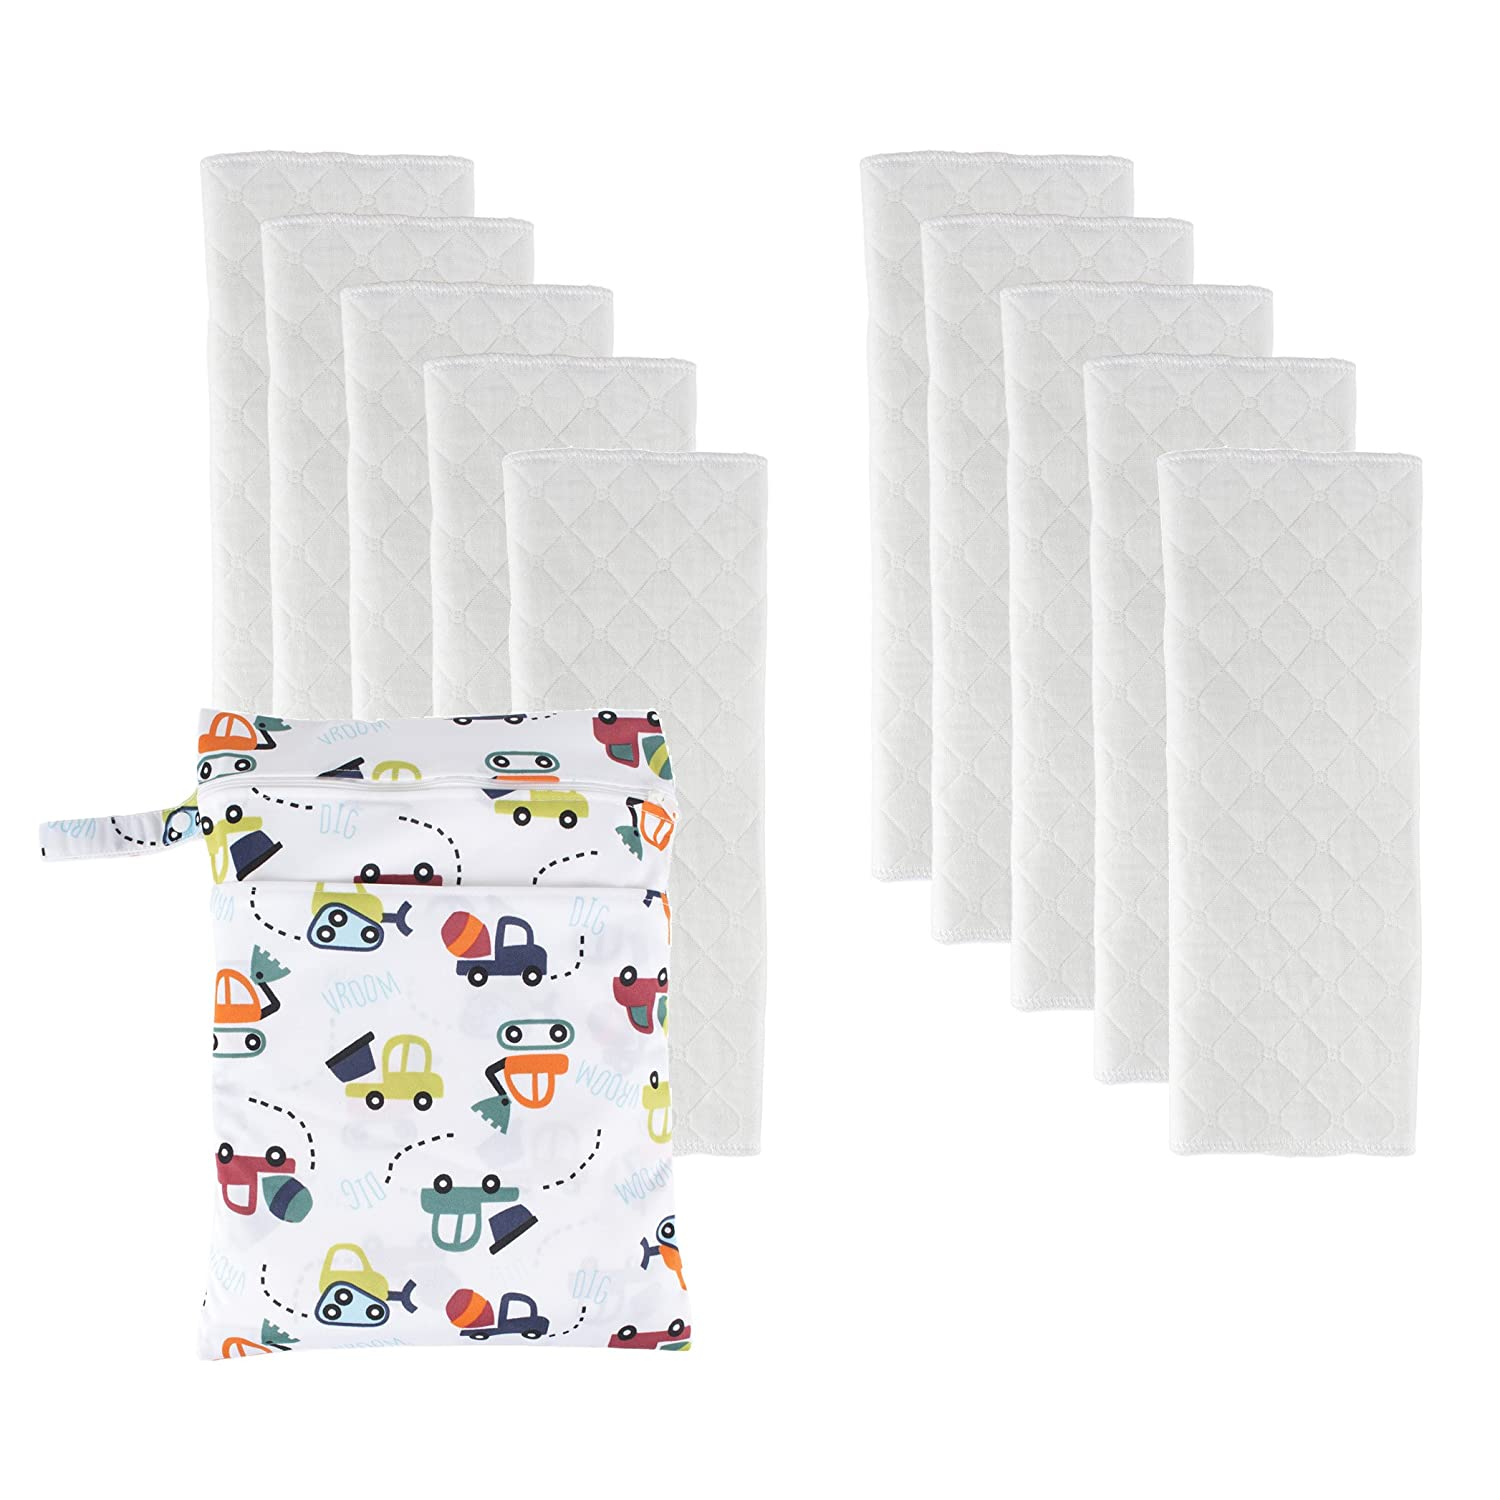 BIG ELEPHANT 8 Pack Baby Solid Color Reusable Cloth Pocket Diapers Pocket Nappies PD-04 NB01-A